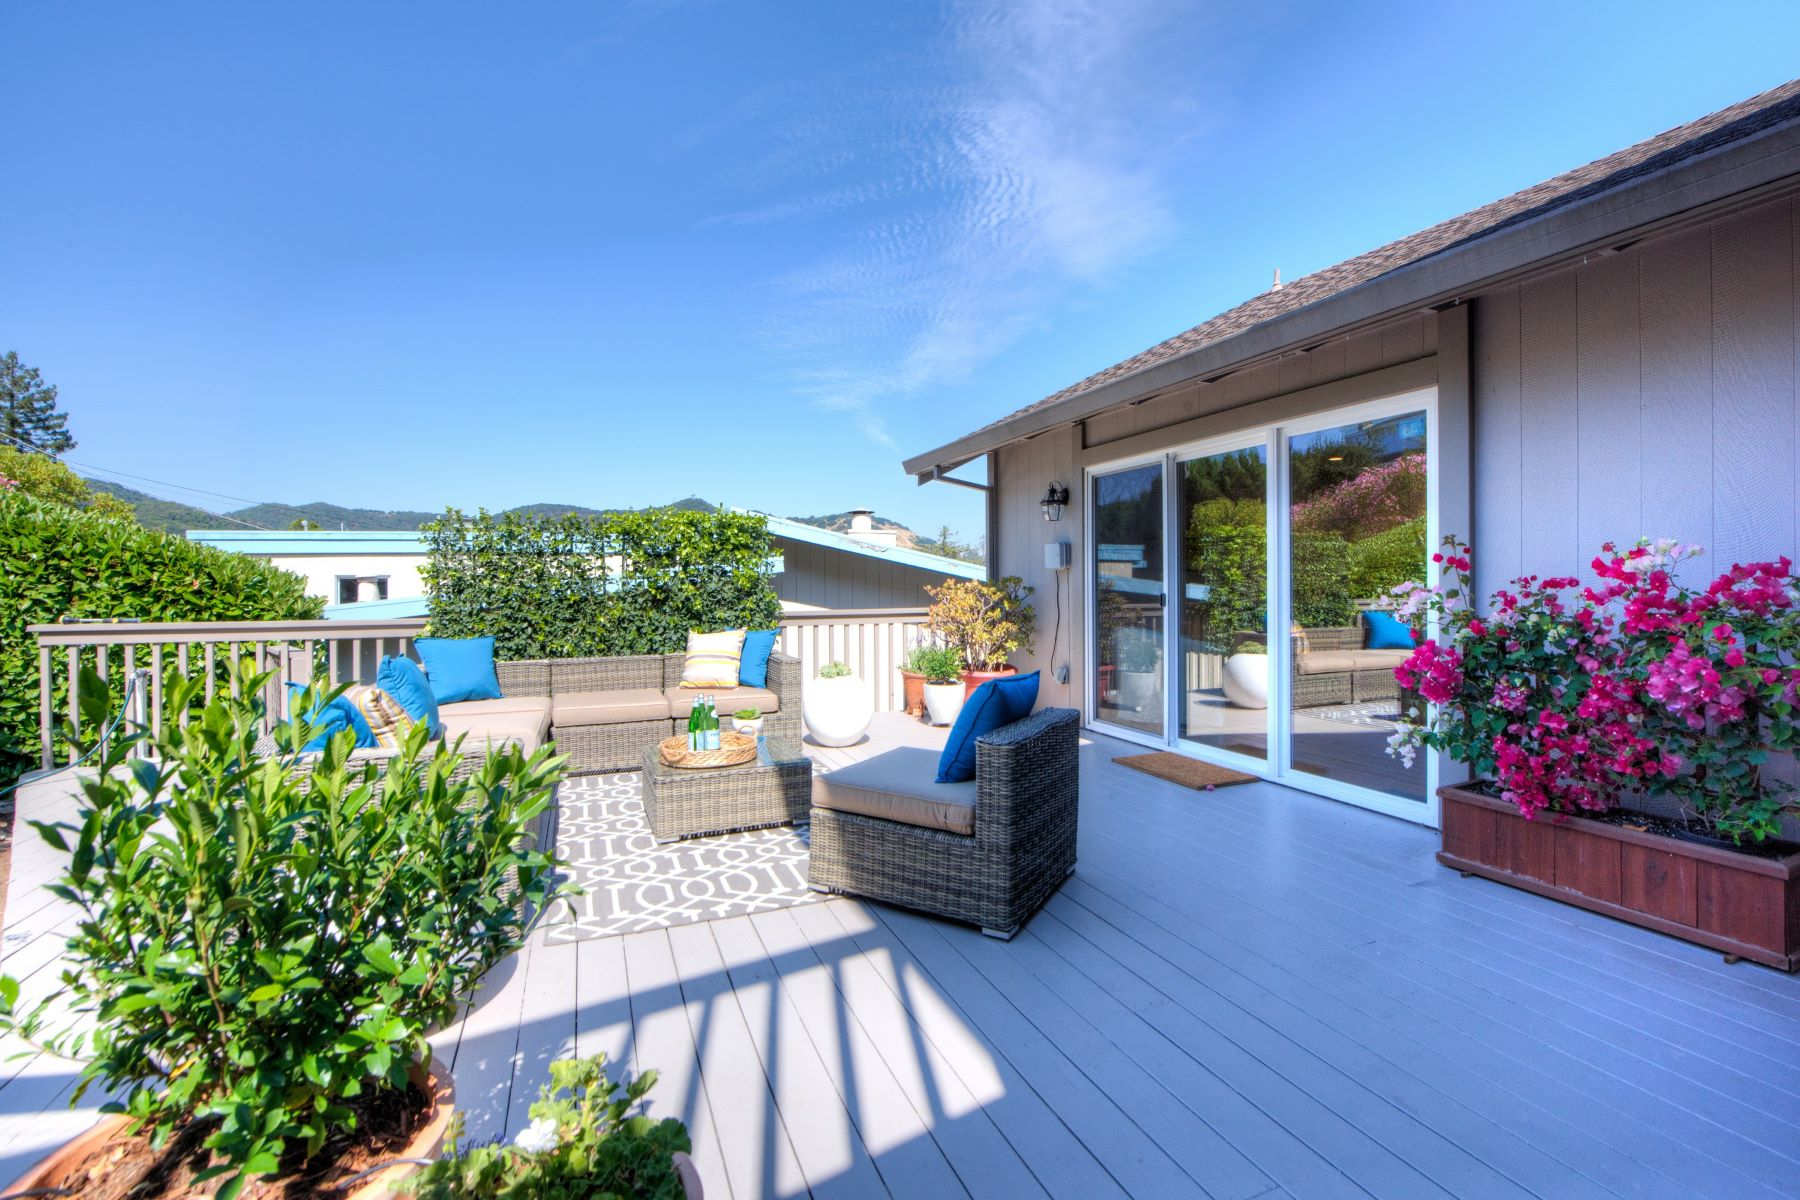 Additional photo for property listing at Remodeled Sun-Filled Contemporary Home with Two-Bridge Bay Views 36 Tampa Drive San Rafael, Californie 94901 États-Unis